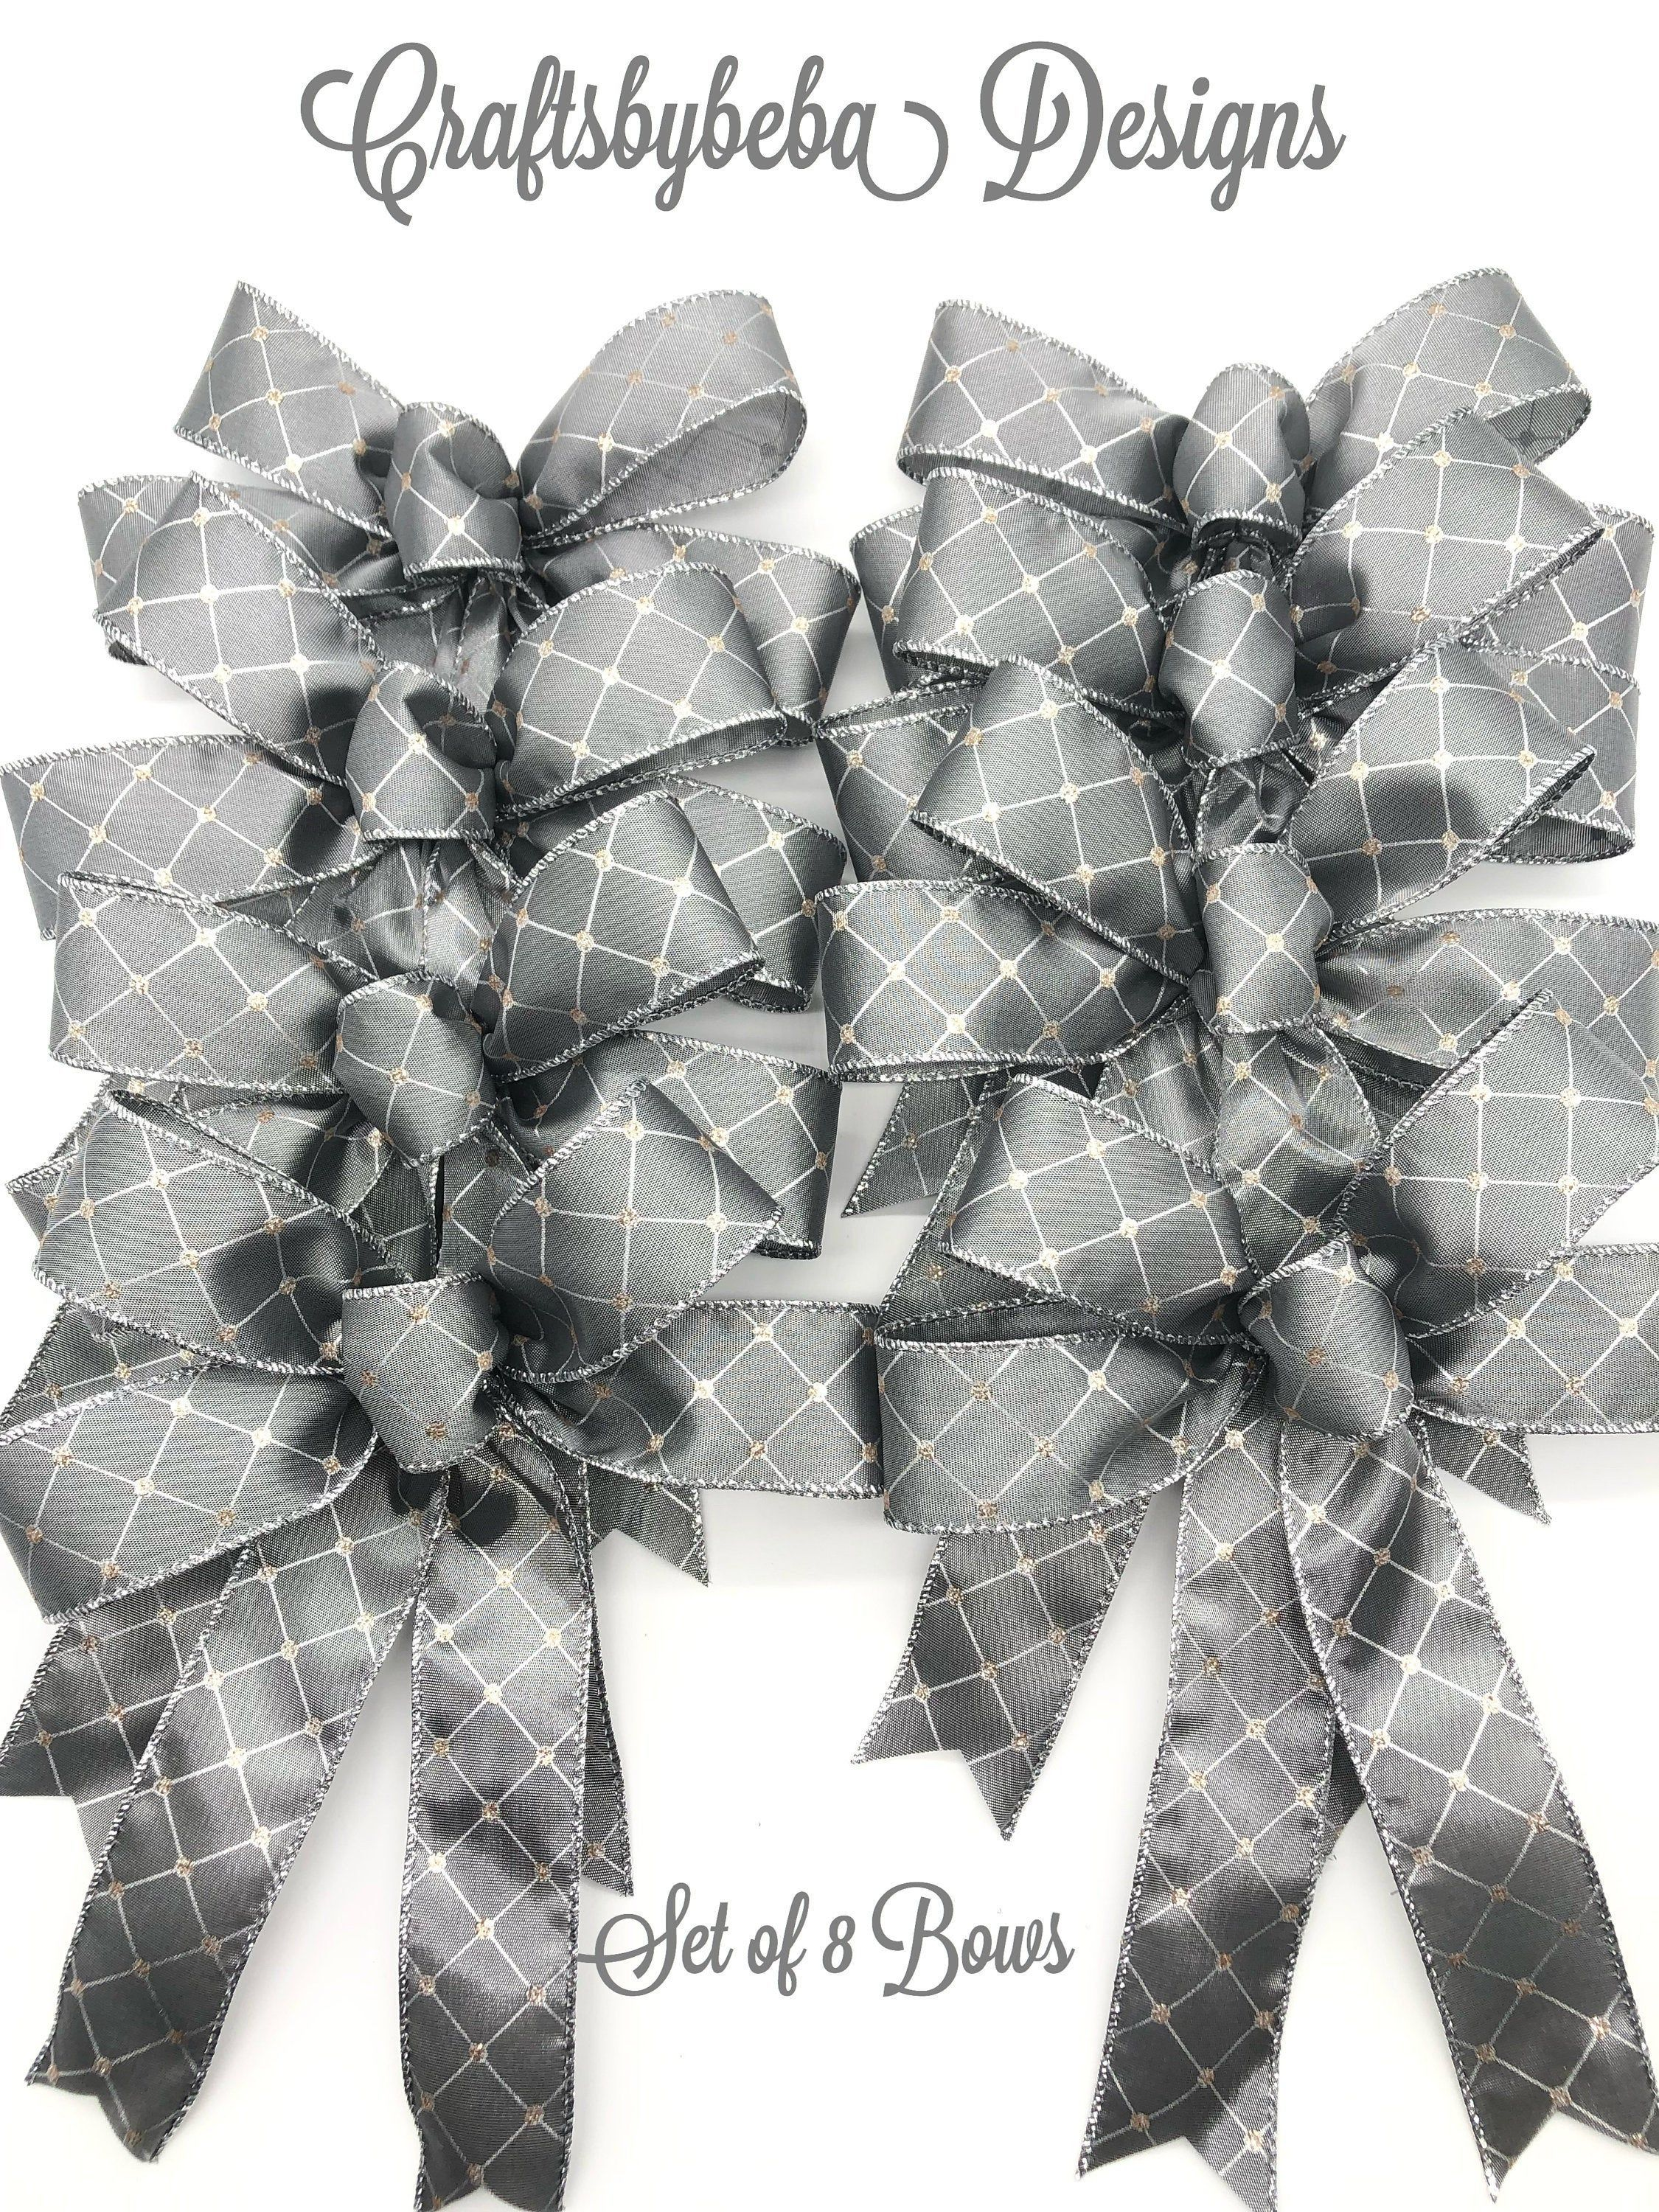 Gray Christmas Decorative Bows Set Of 8 Bows Christmas Tree Bows Gray And Silver Christmas Bows Small Christmas Bows Gray Bows Christmas Bows Christmas Tree Bows Christmas Wreath Bows